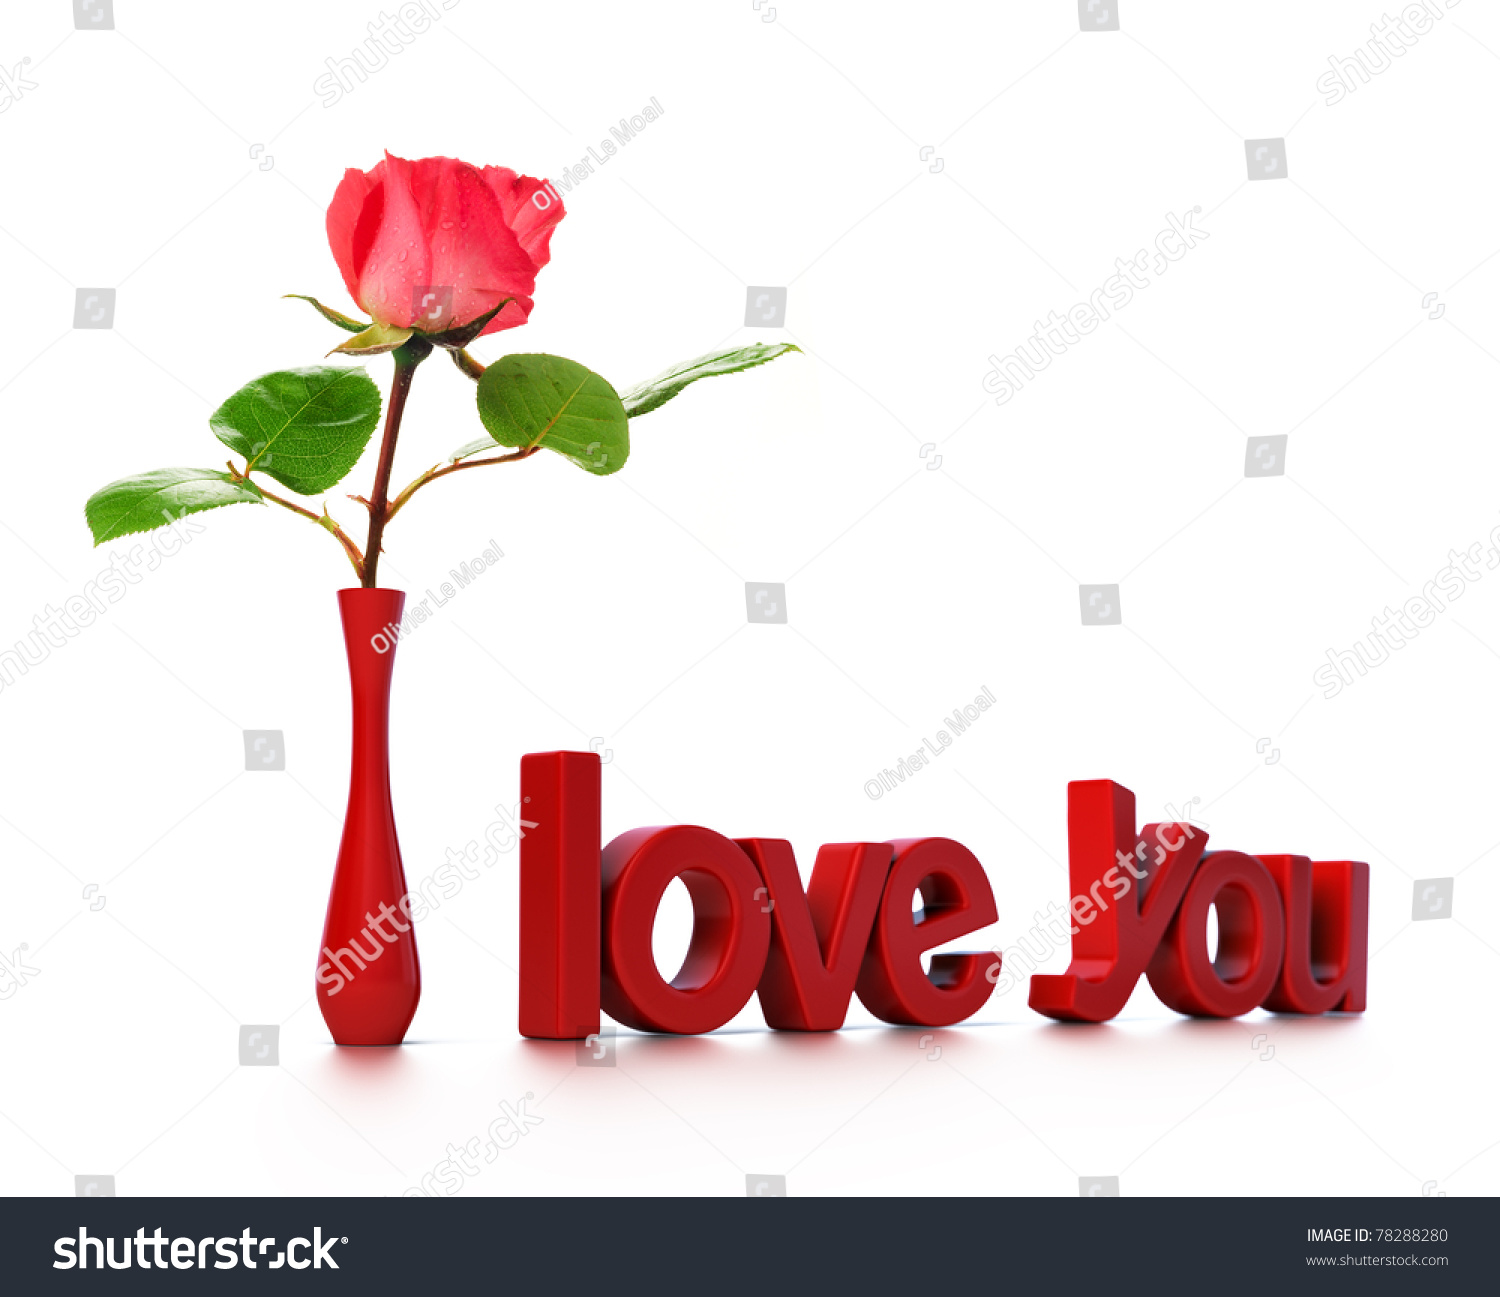 I love you rose photo